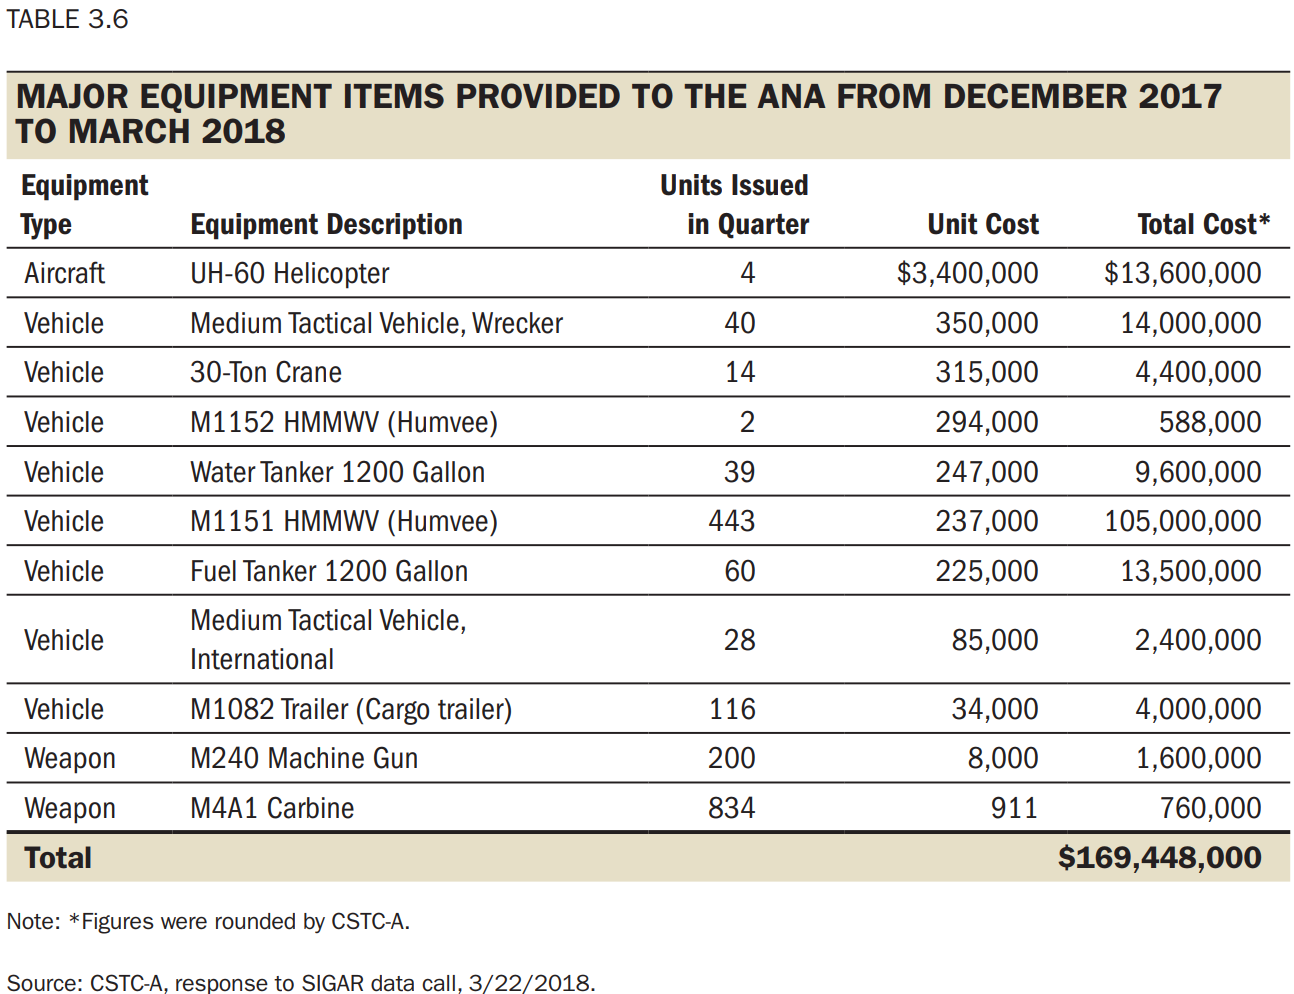 Major equipment items provided to the Afghan National Army from December 2017 to March 2018.